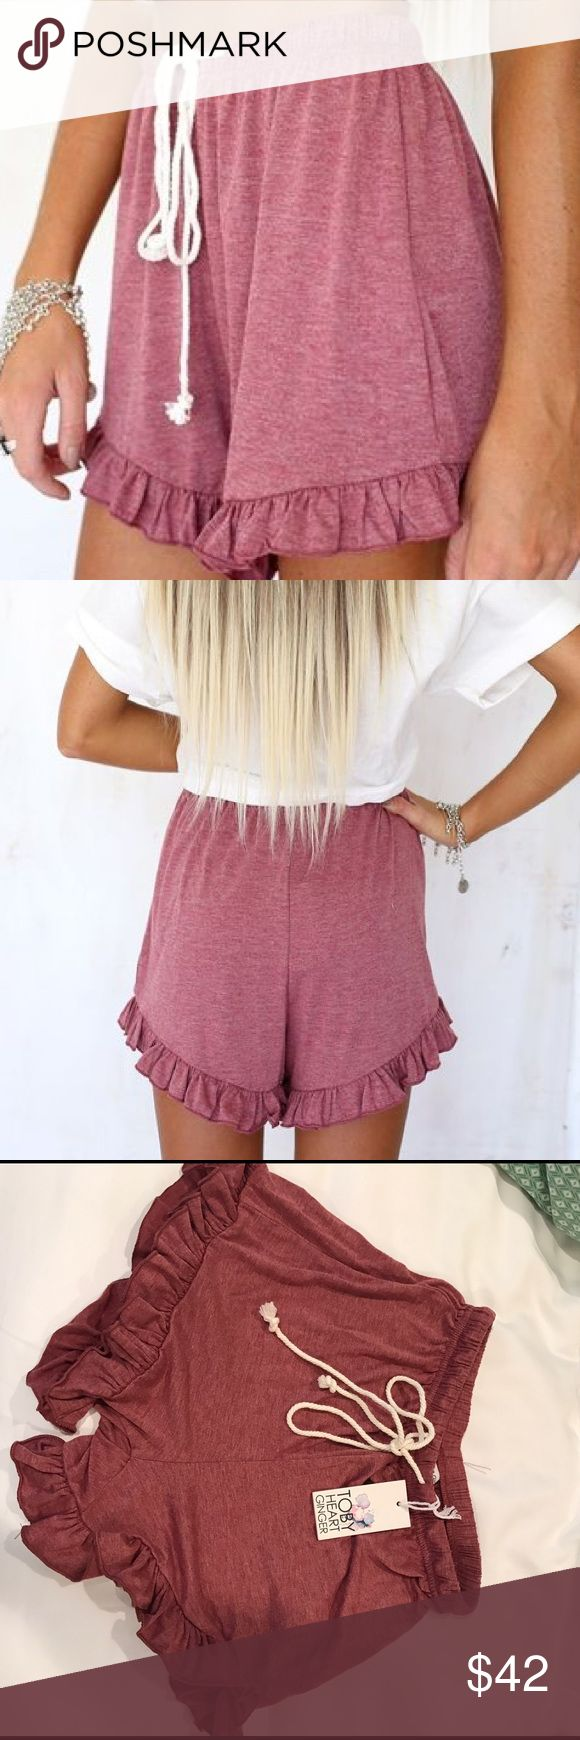 """Sabo skirt frill ruffle shorts NWT Sabo skirt """"Chill Frill"""" shorts. SIZE XS, but also could work for a small! These are SOLD OUT and no longer available on their website, so snatch these up while you can! So cute on. Wear them for leisure, or for a cute day outfit. Never worn, new with tags. Color is a light maroon/burgundy. Also similar to the Free People style. Originally $52 on saboskirt plus $10 ship. Chaper on mercri! Sabo Skirt Shorts"""